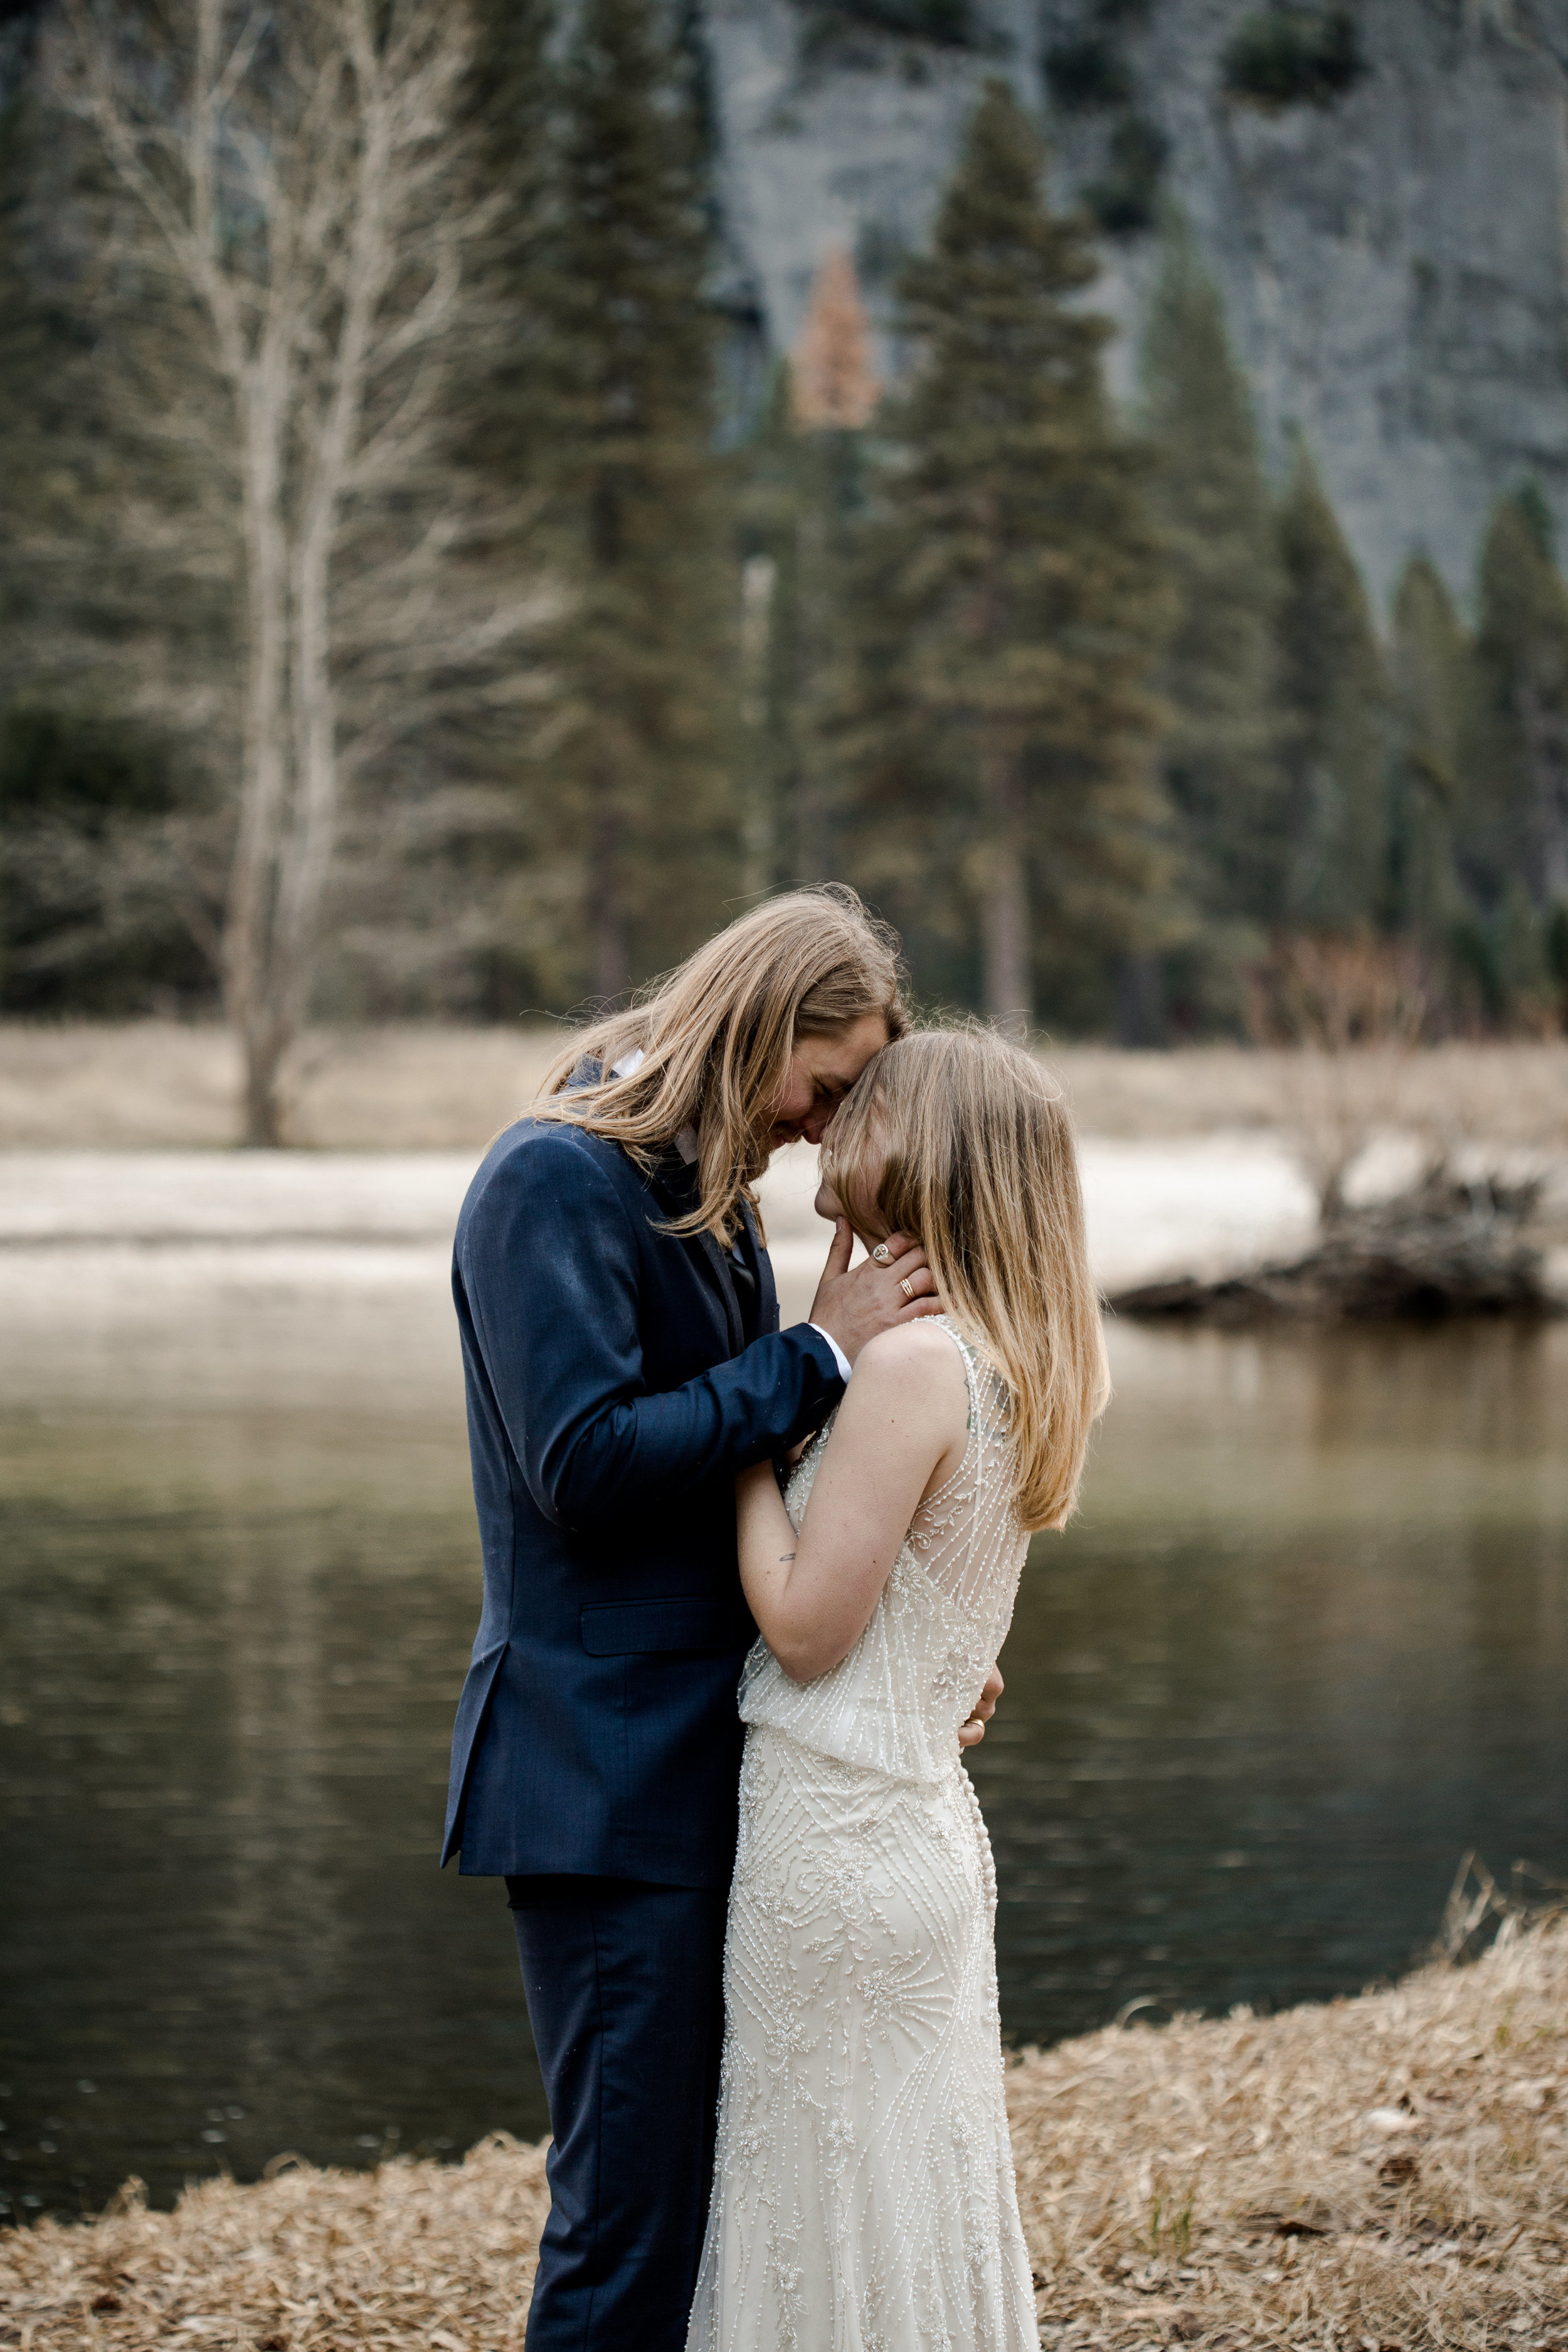 nicole-daacke-photography-yousemite-national-park-elopement-photographer-winter-cloud-moody-elope-inspiration-yosemite-valley-tunnel-view-winter-cloud-fog-weather-wedding-photos-33.jpg